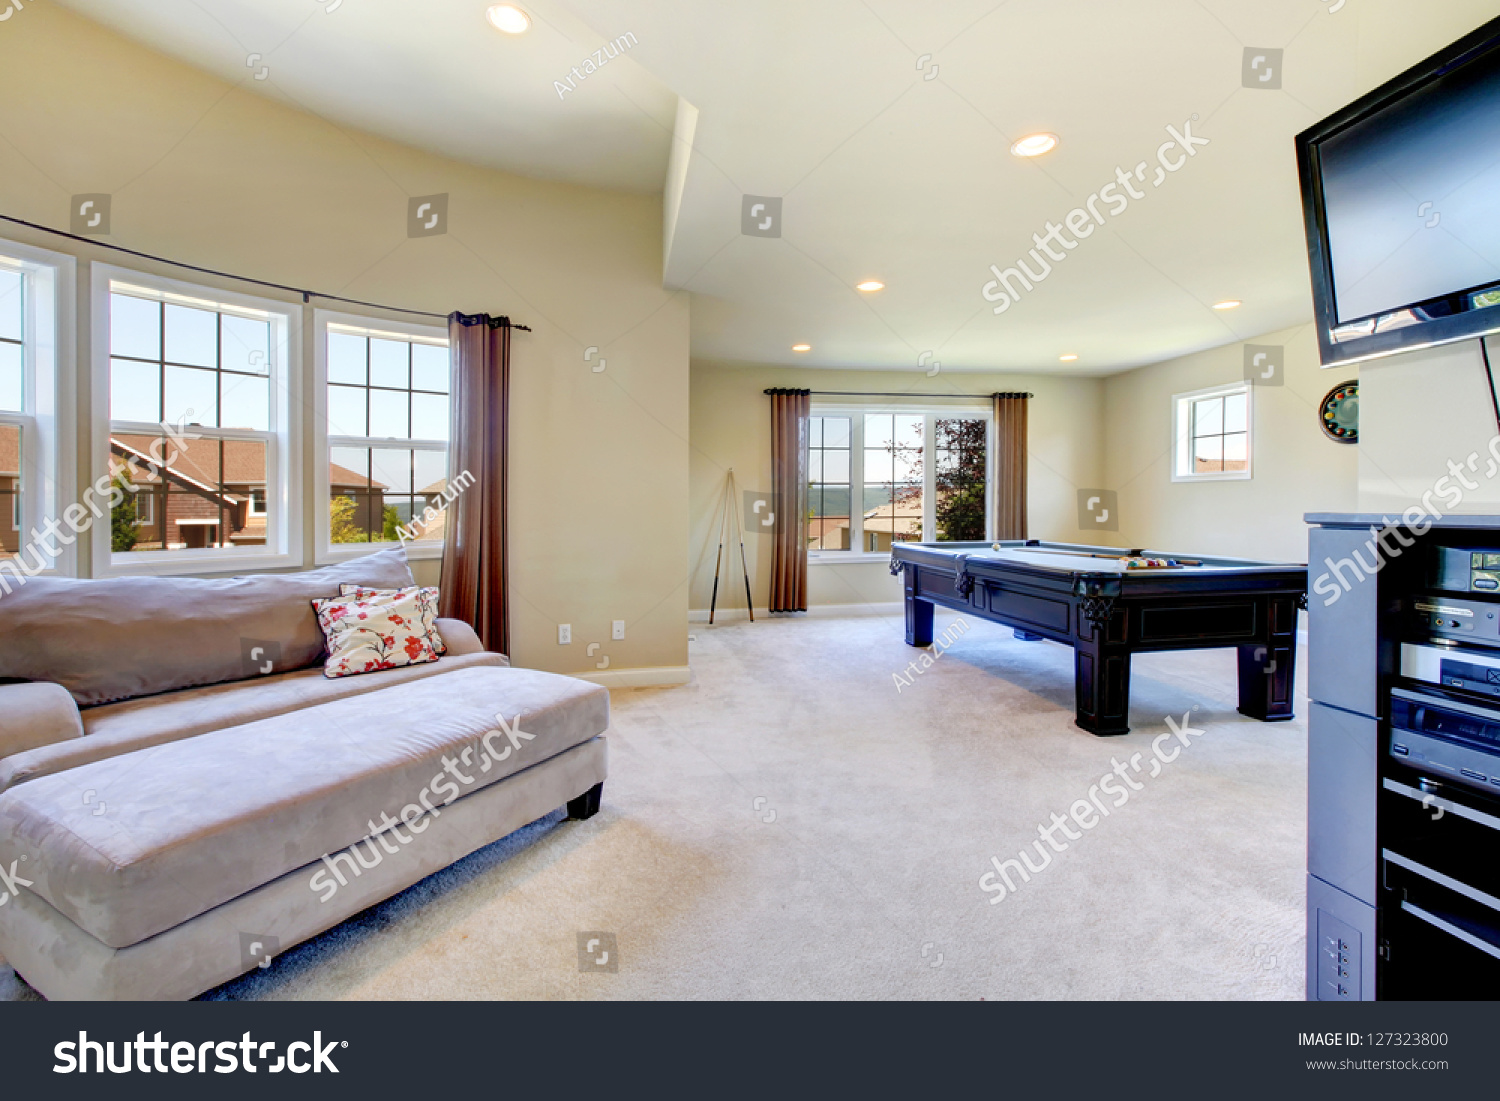 Large Family Room With Pool Table, Sofa And Tv. Part 61